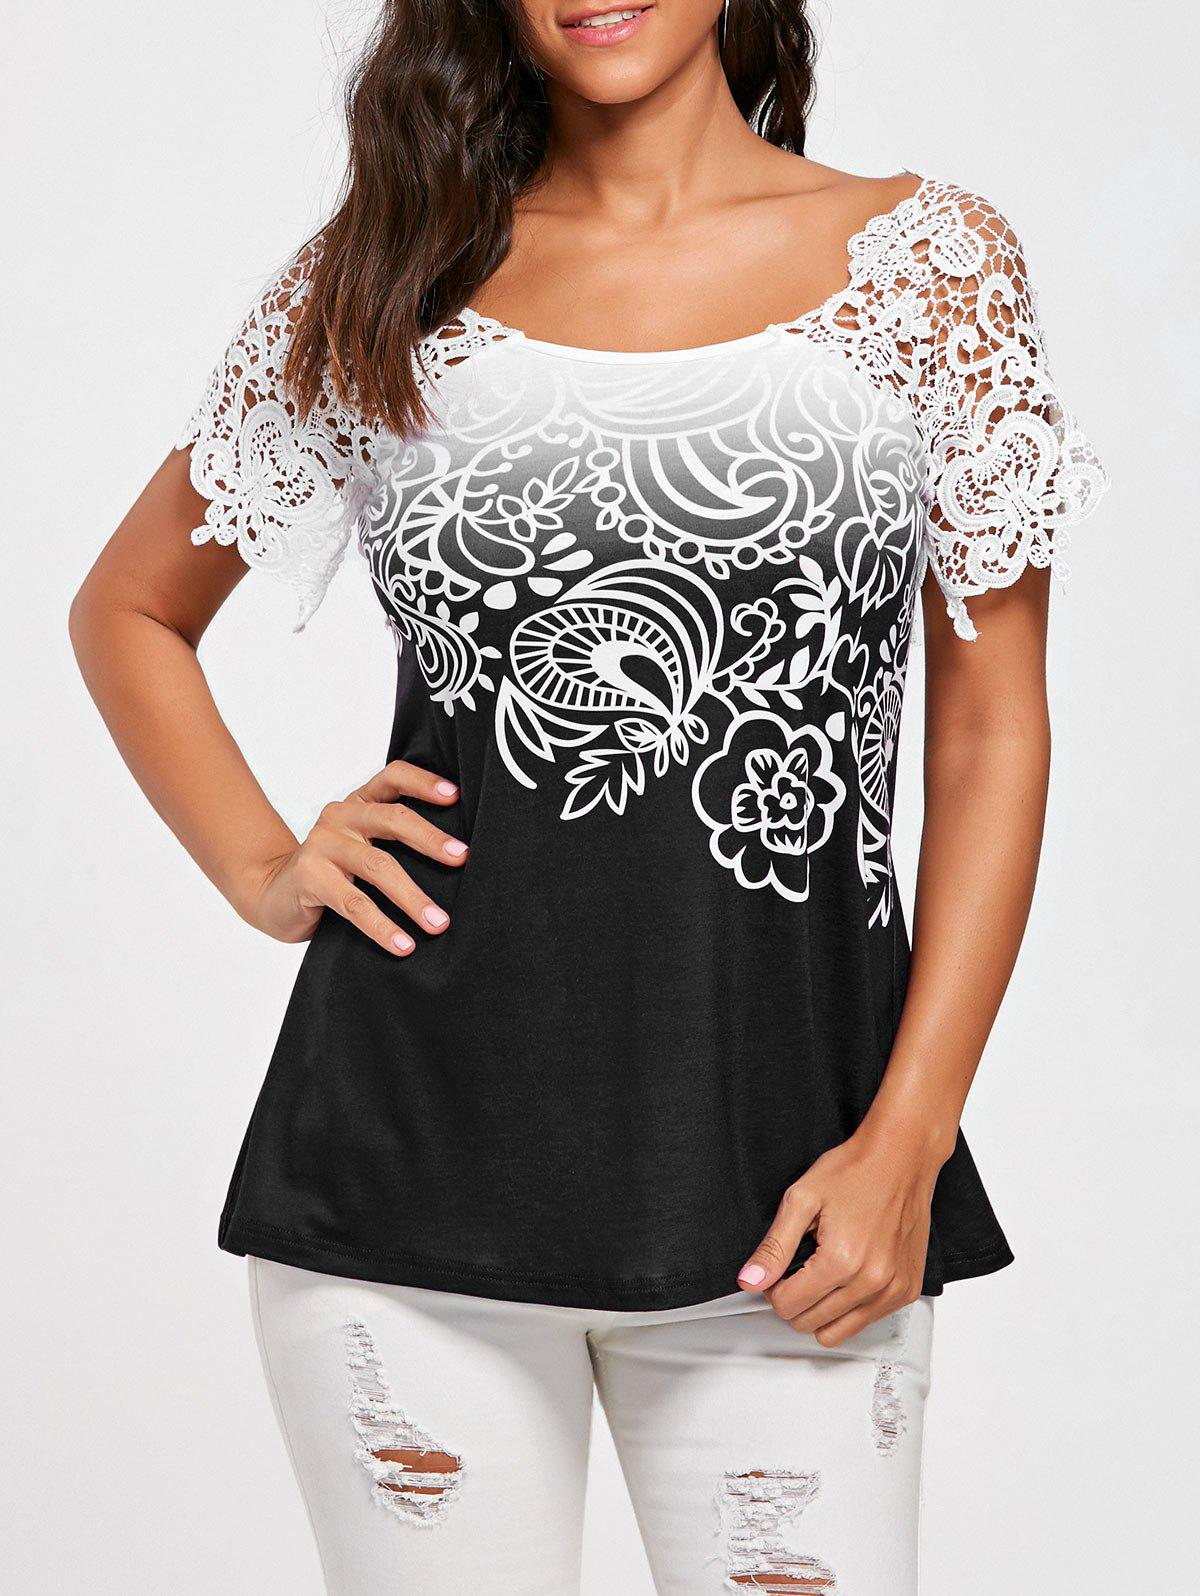 Floral Lace Trim Cutwork T-shirtWOMEN<br><br>Size: 2XL; Color: BLACK; Material: Polyester,Spandex; Shirt Length: Regular; Sleeve Length: Short; Collar: Scoop Neck; Style: Fashion; Season: Summer; Embellishment: Lace; Pattern Type: Floral; Weight: 0.2300kg; Package Contents: 1 x T-shirt;